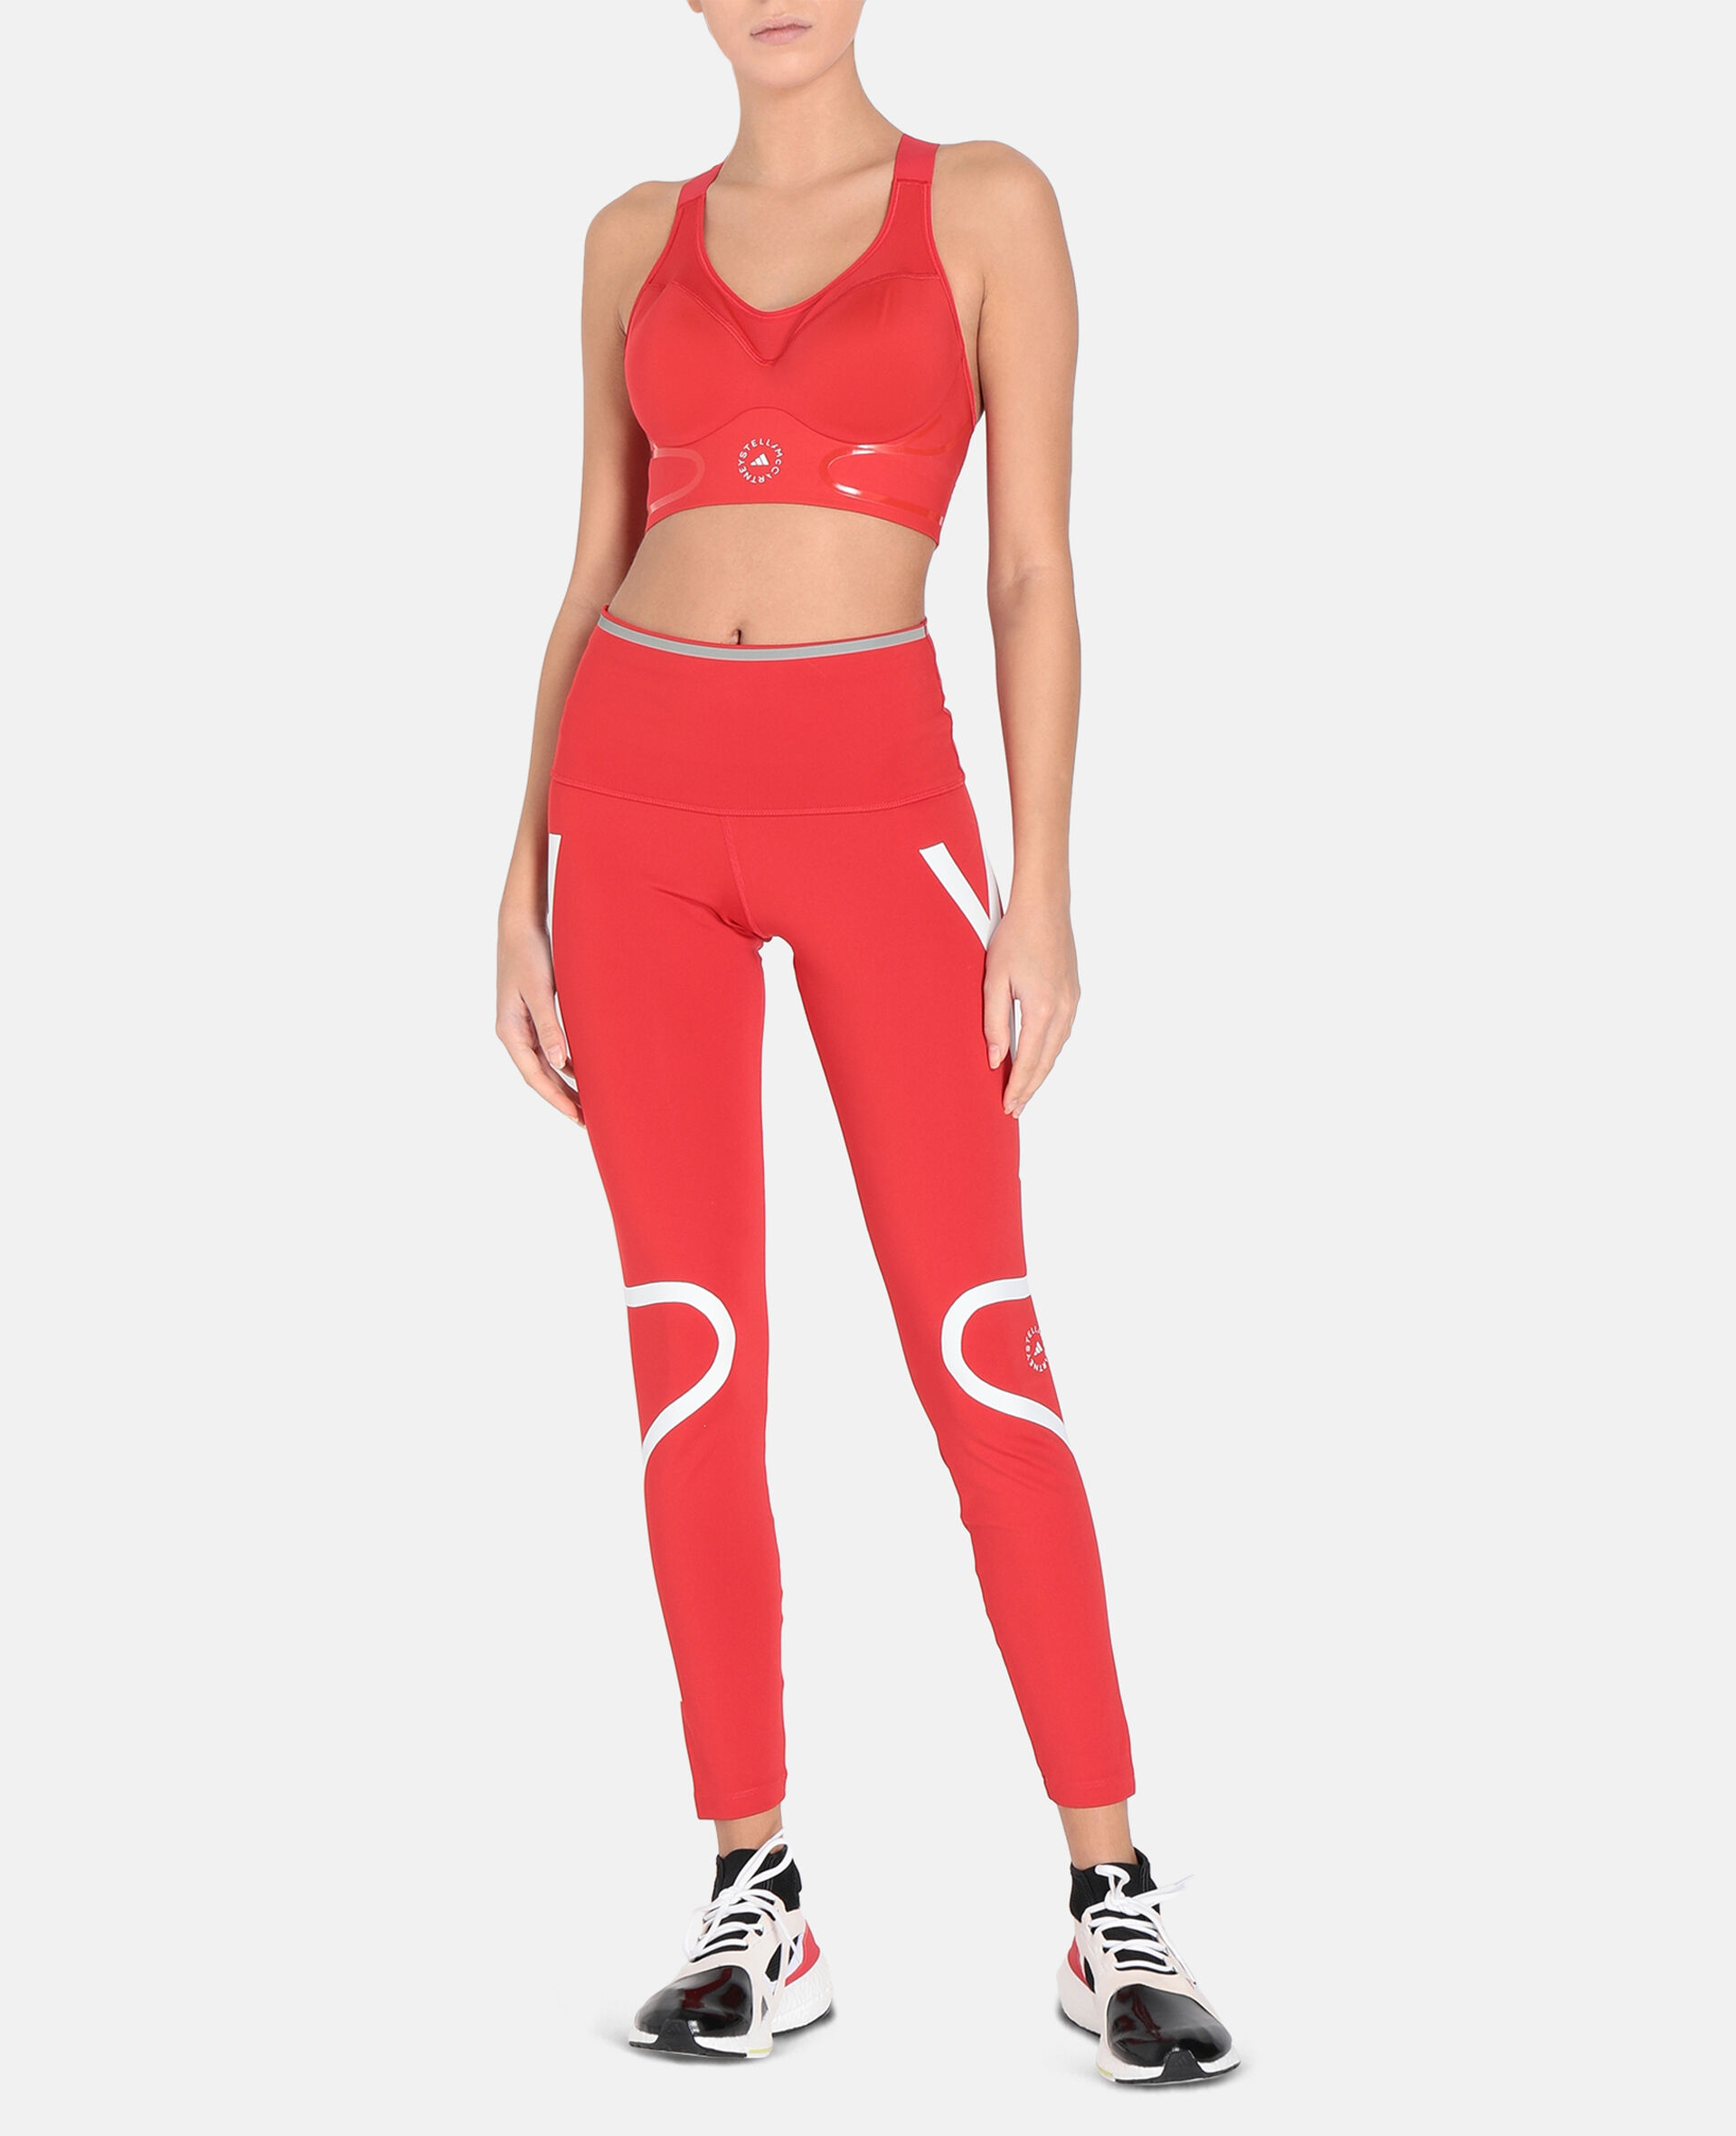 TruePace High-Impact Bra-Red-large image number 1